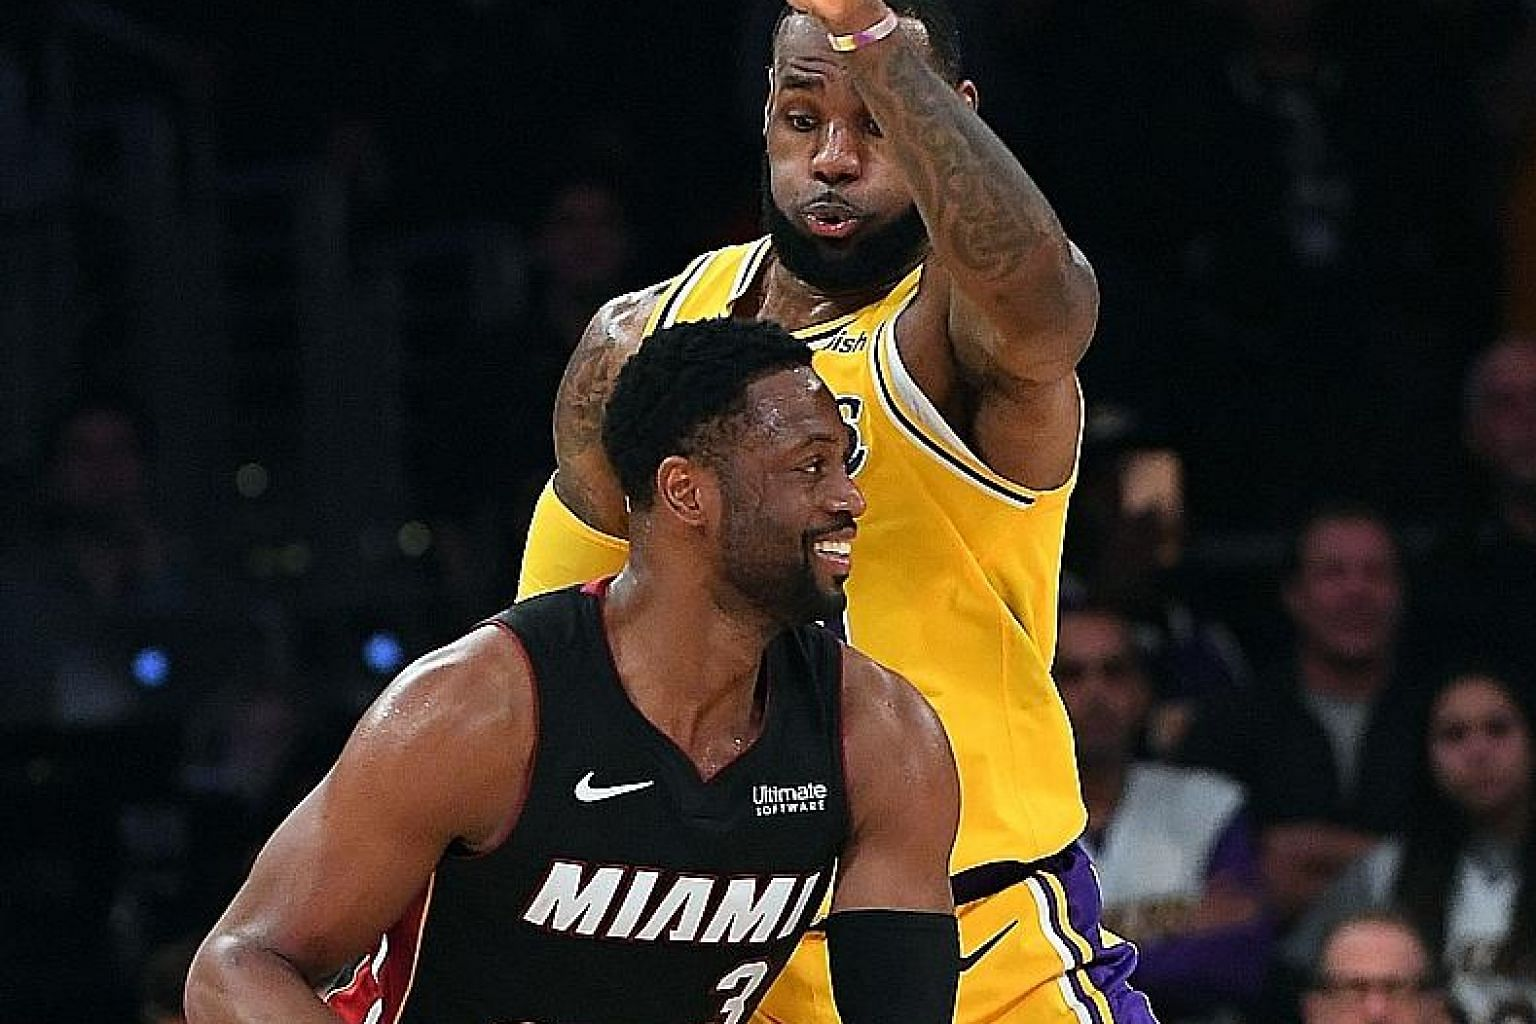 Dwyane Wade (front) and LeBron James arrived in the NBA as part of a star-studded draft in 2003. Monday's contest was the 31st between the two players, with James' Los Angeles Lakers hanging on to beat Wade's Miami Heat 108-105.